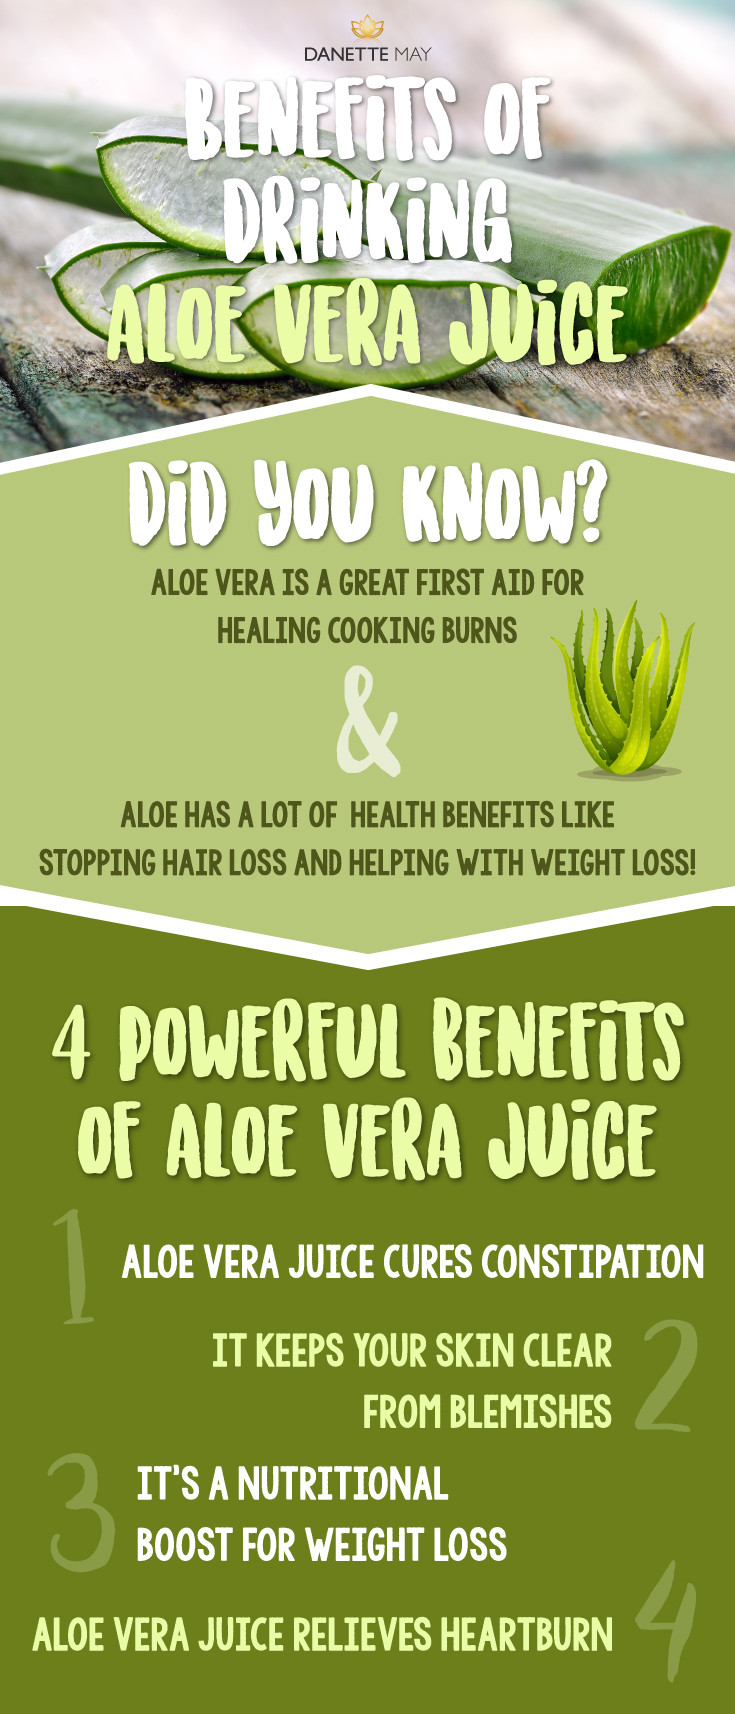 4 Powerful Benefits Of Drinking Aloe Vera Juice Danettemay